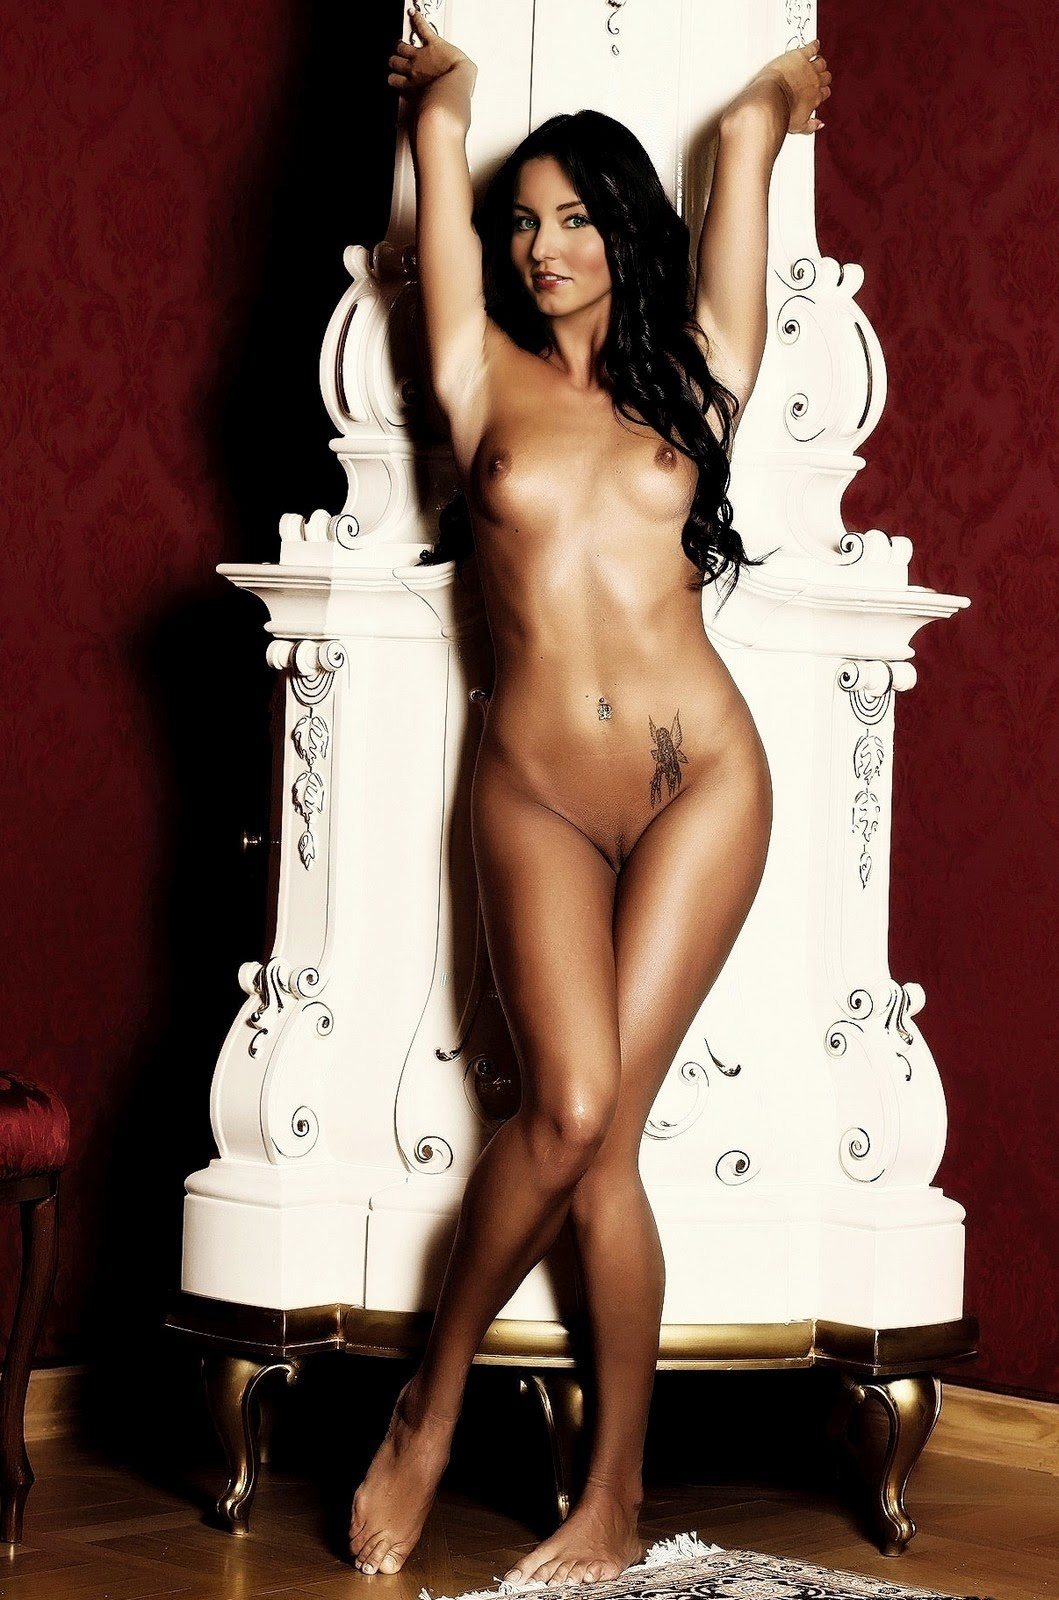 from Avery photos of naked celebs